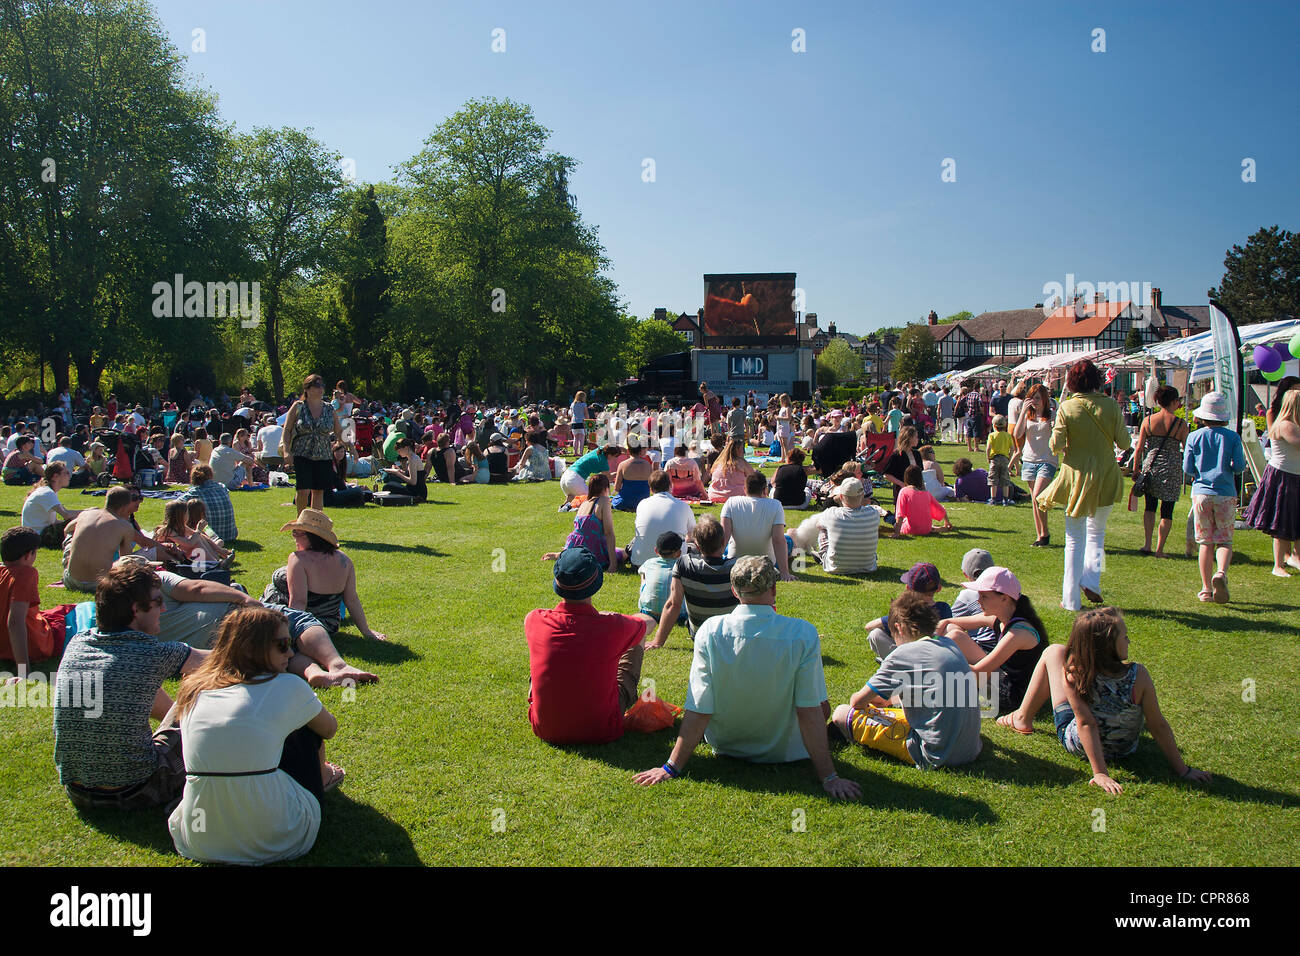 Families watching an open air mobile cinema in Hall Leys Park, Matlock, Derbyshire, England, UK, on a hot sunny - Stock Image